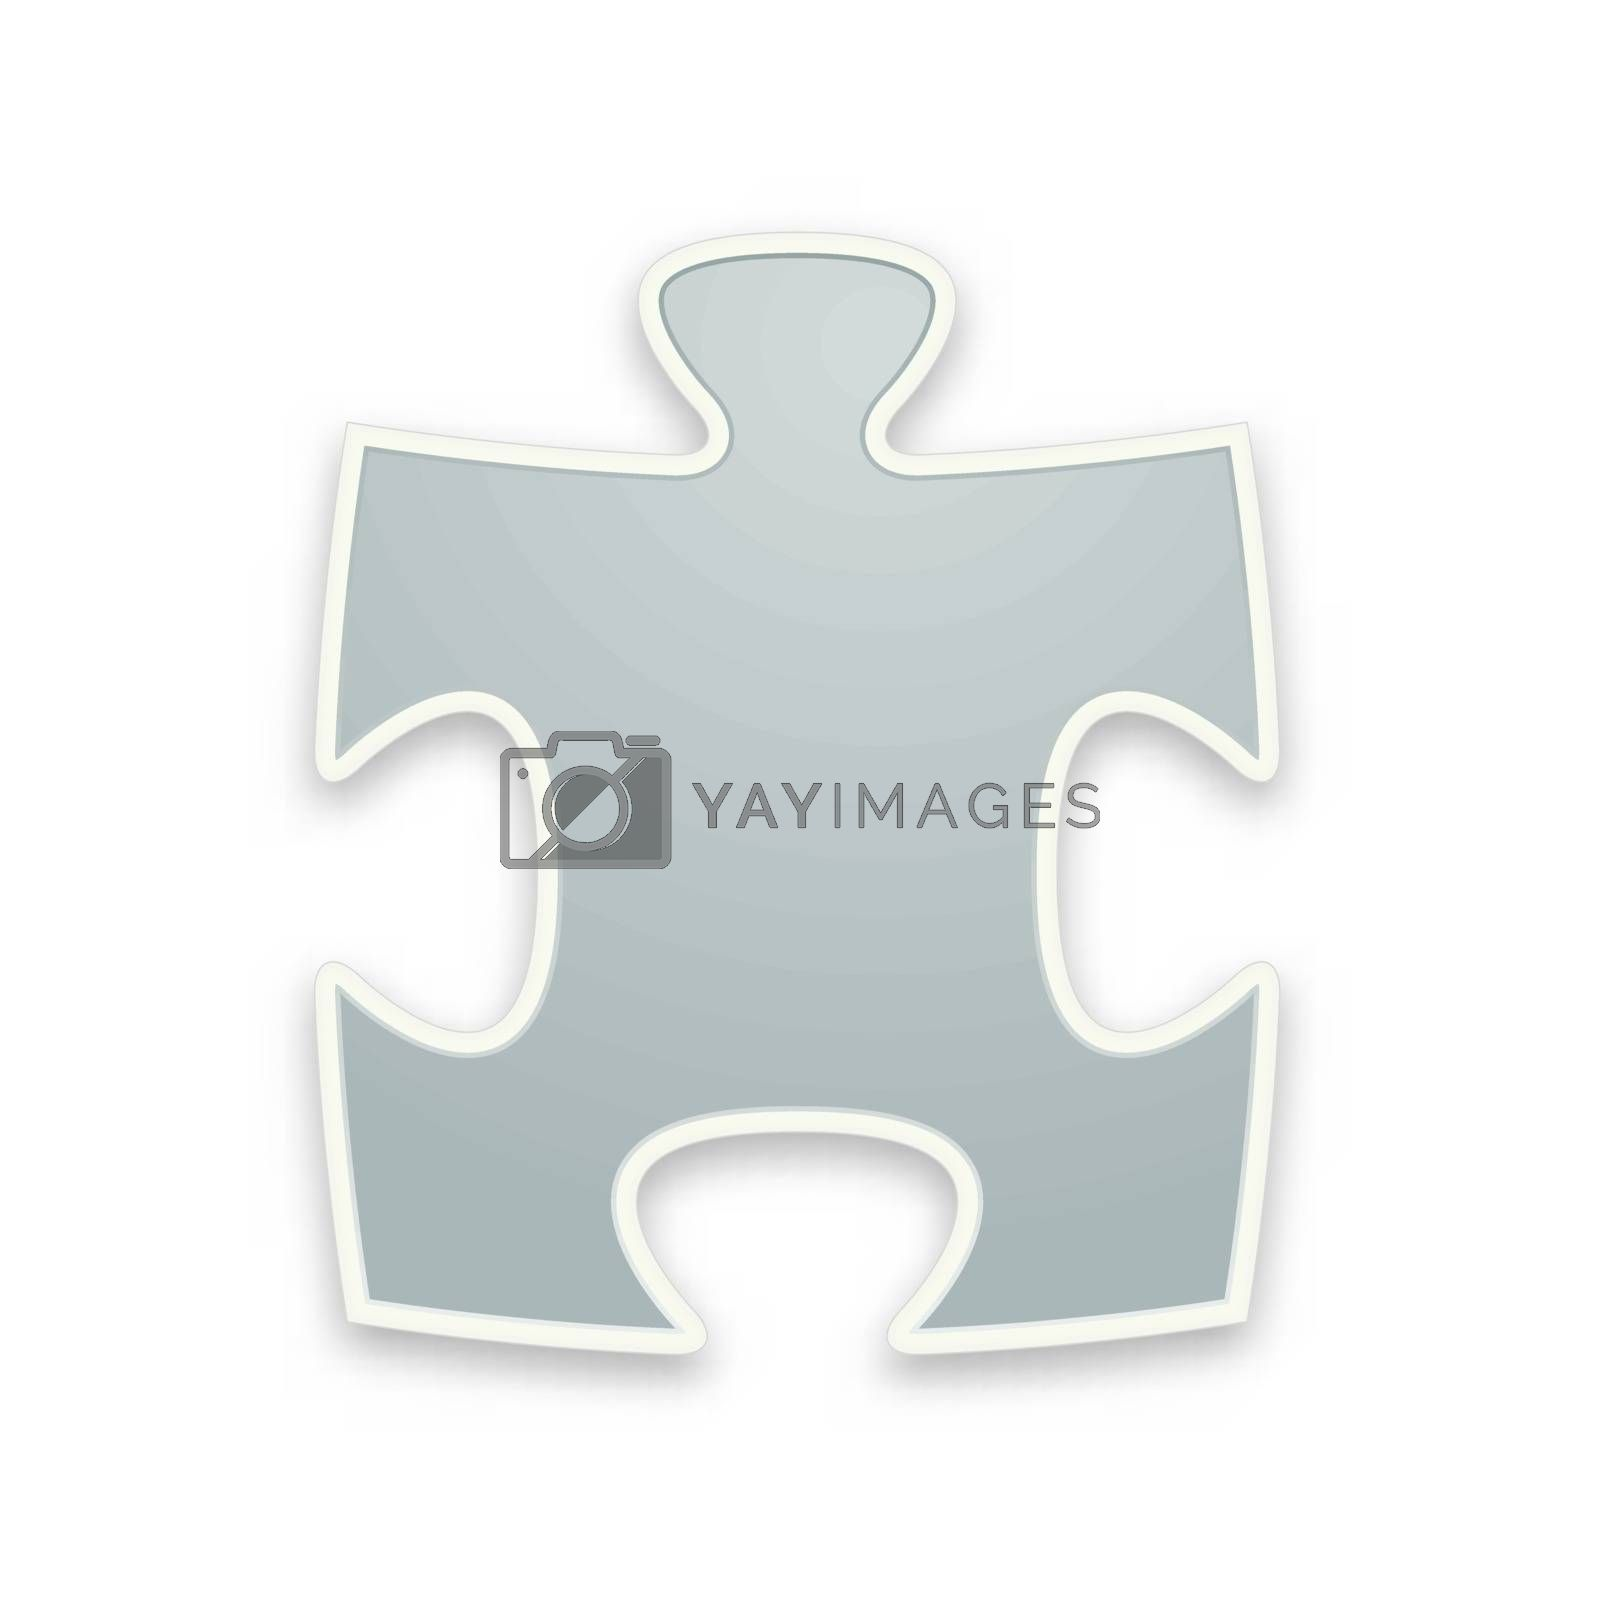 Royalty free image of the puzzle graphic element by madtom